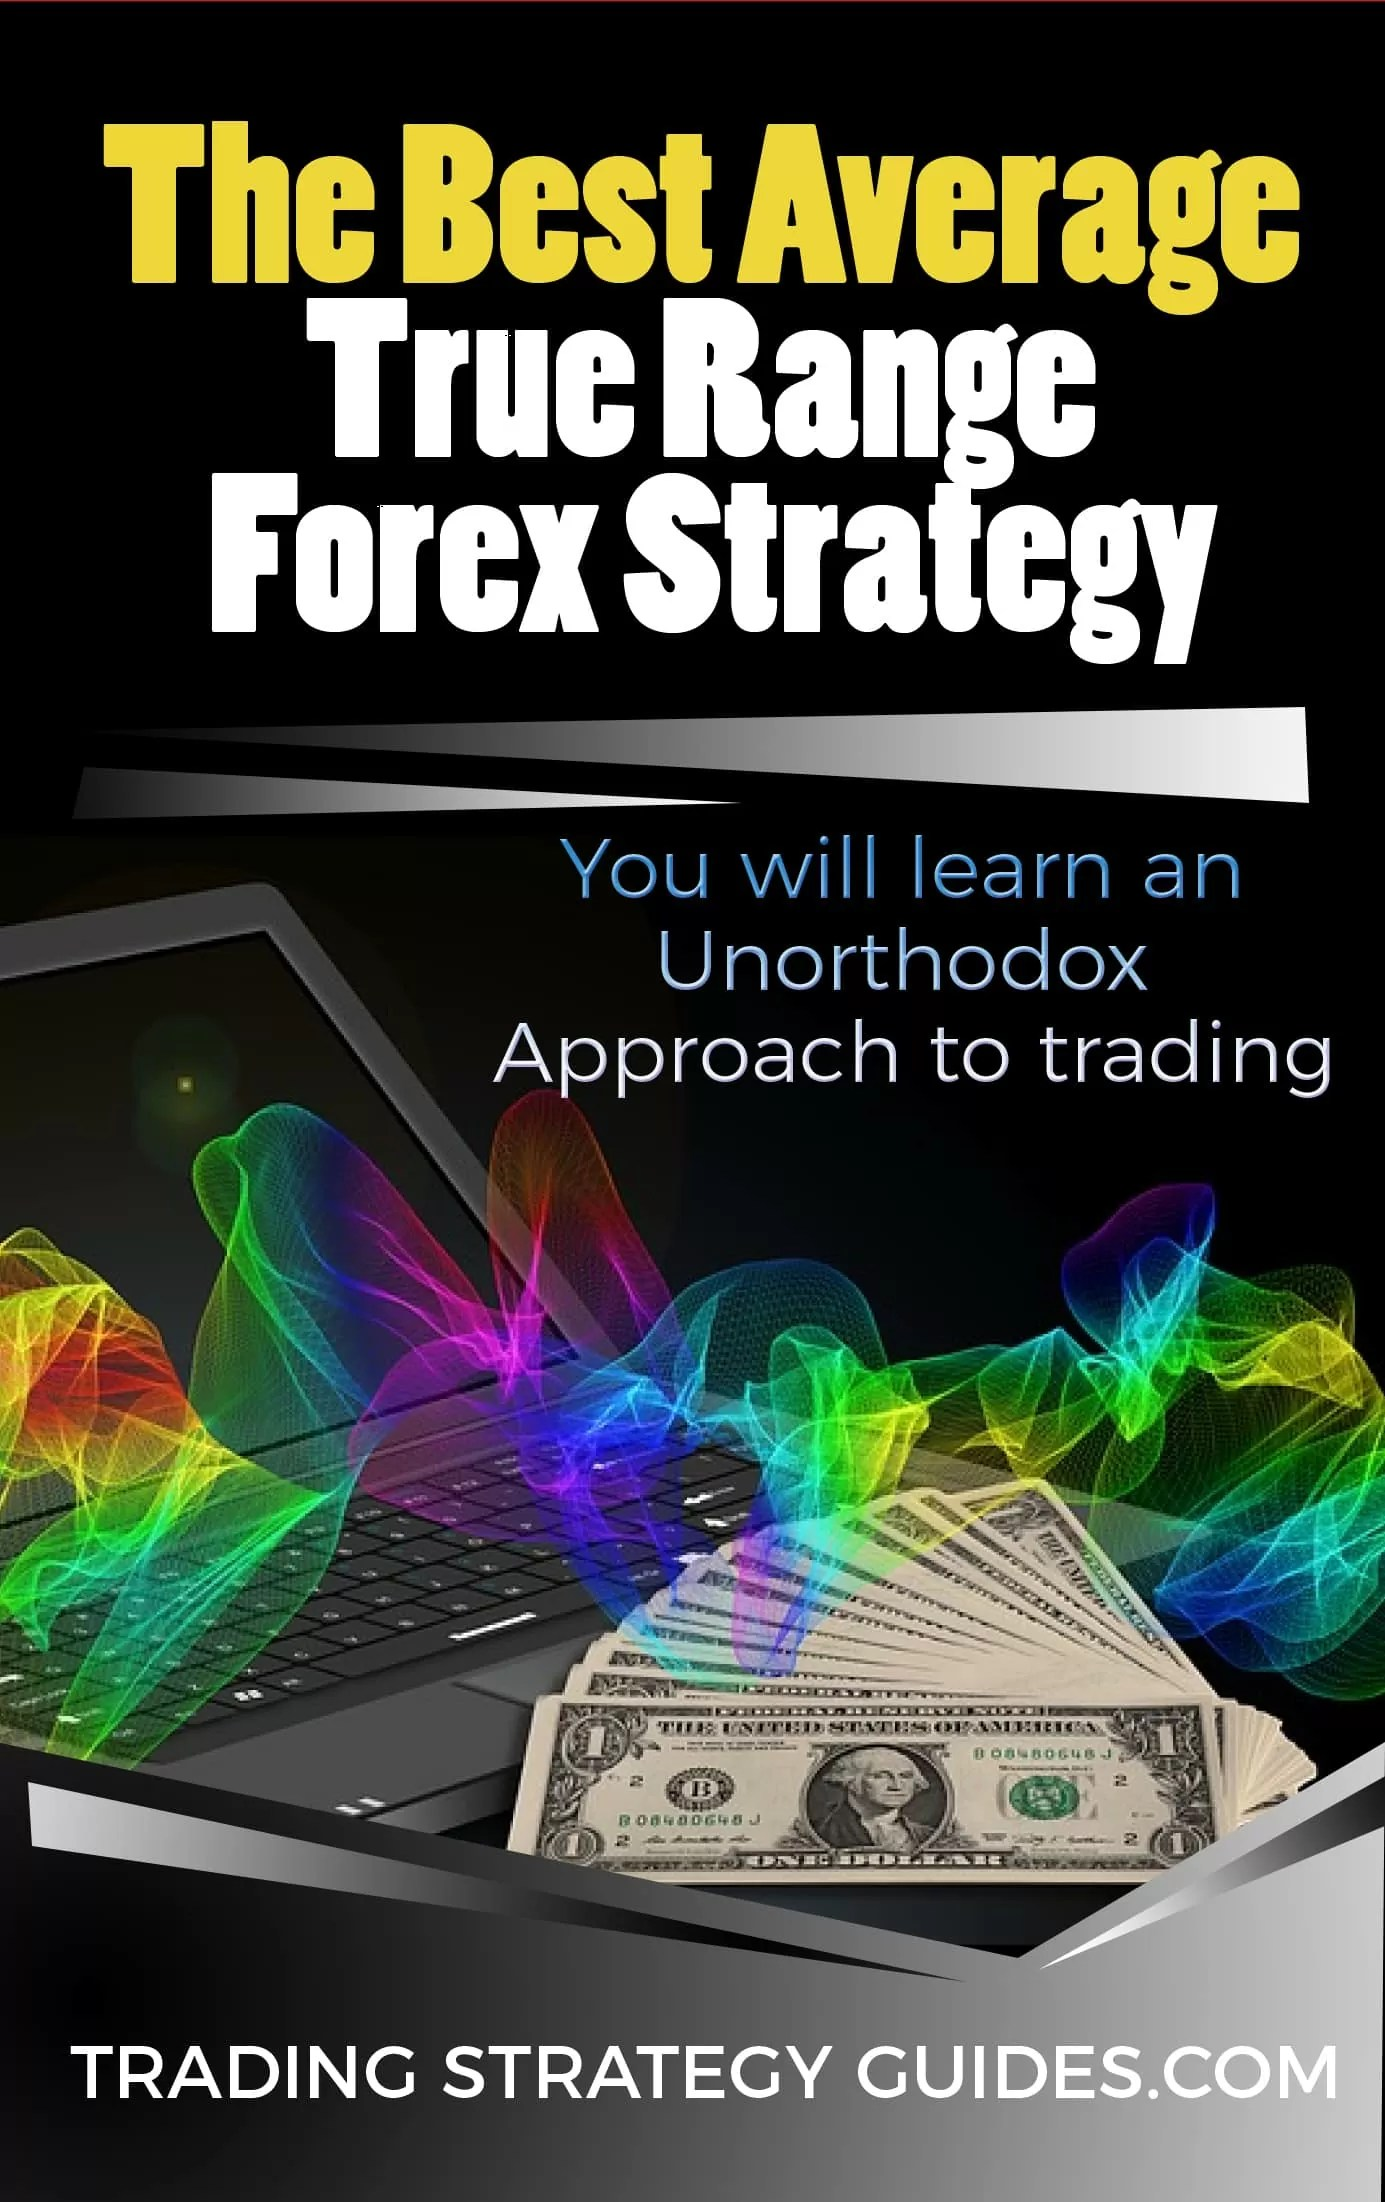 The Best Average True Range Forex Strategy